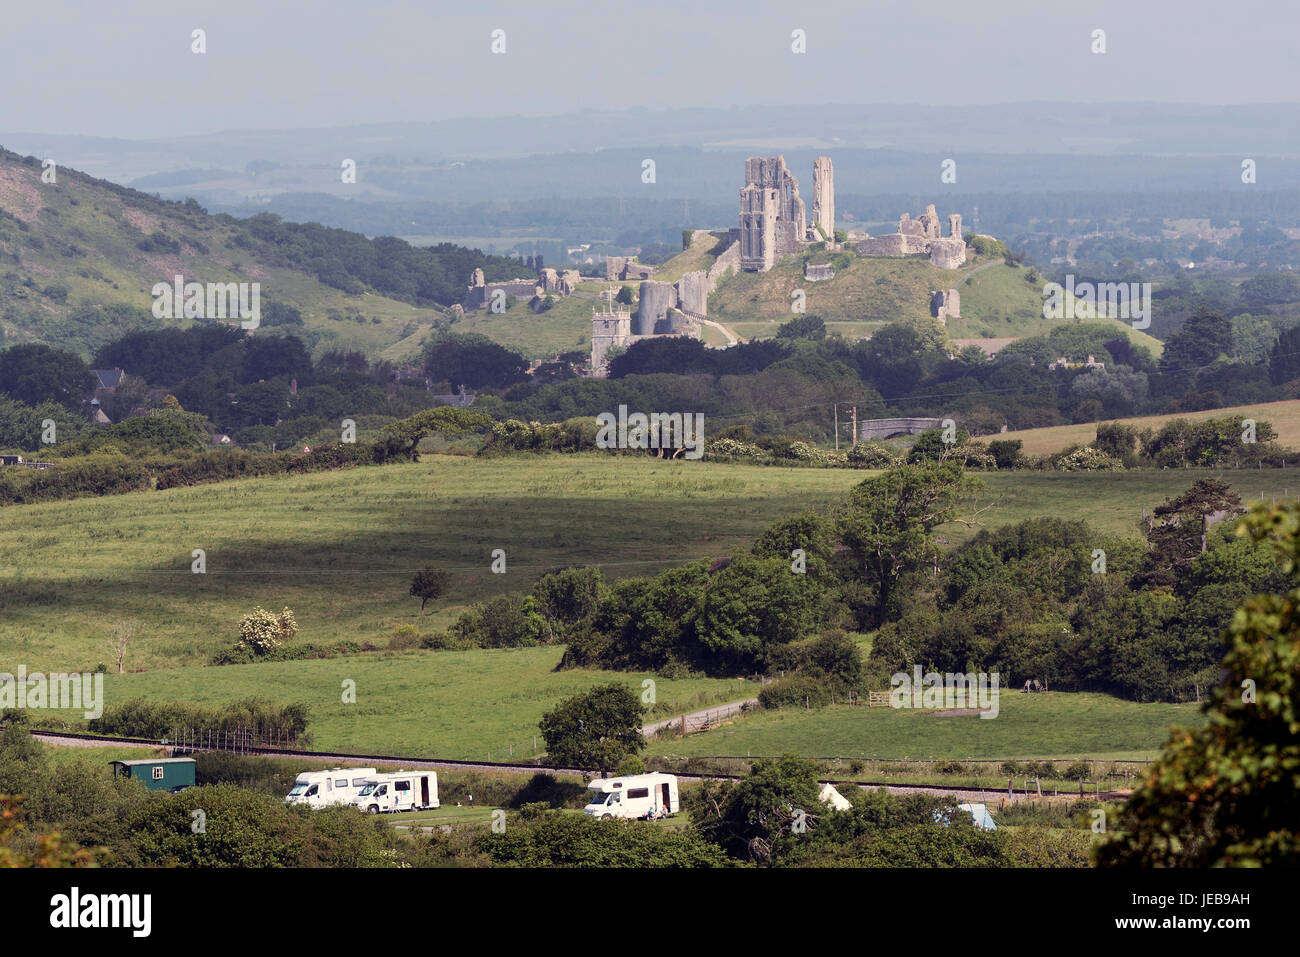 Campsite with a backdrop of Corfe Castle in the Dorset countryside, Southern England UK. June 2017 - Stock Image